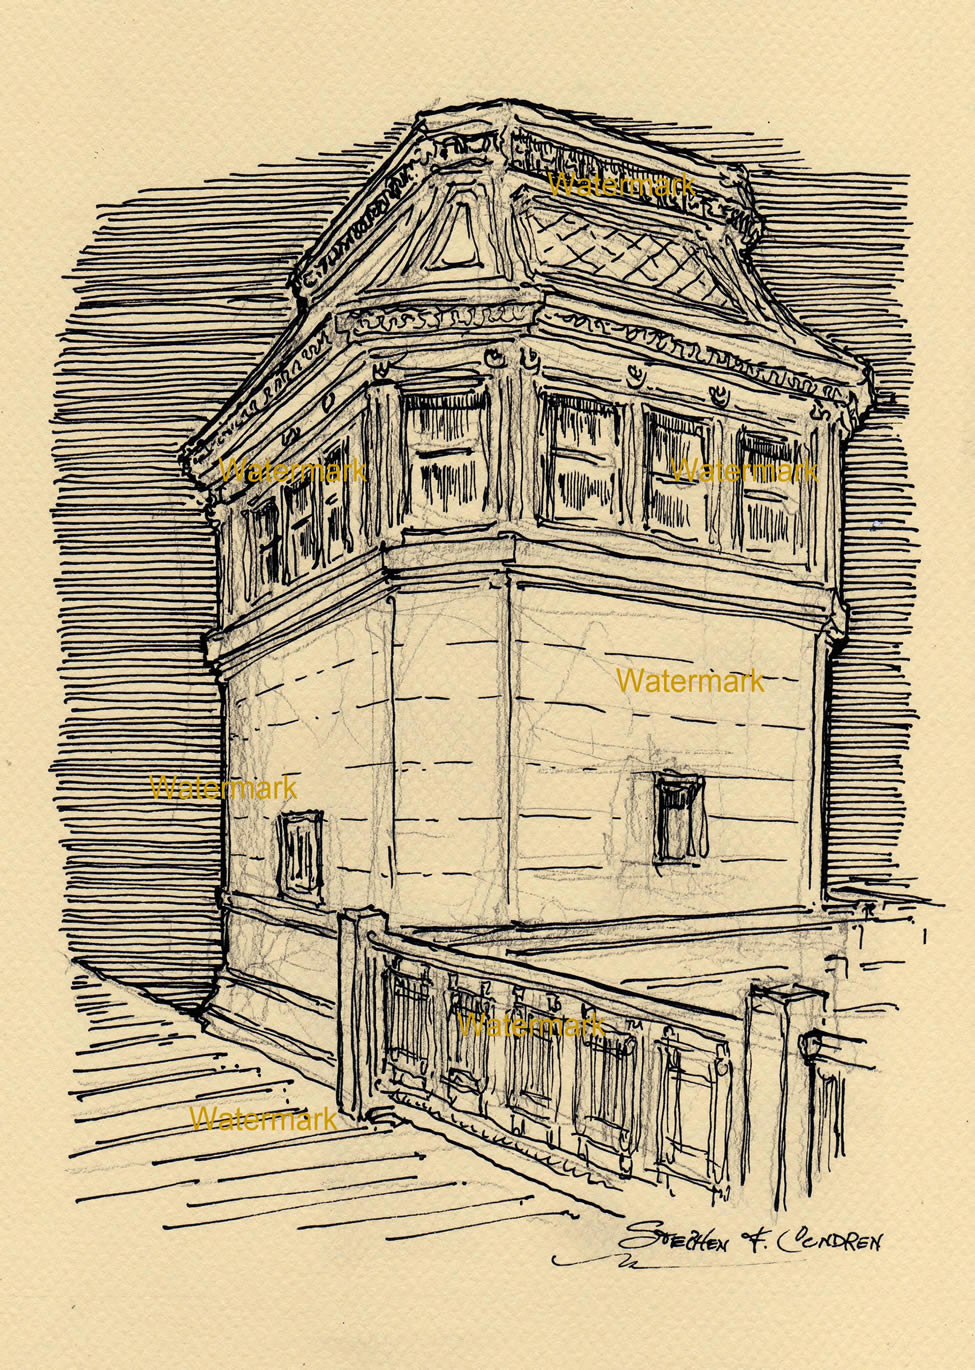 Pen & ink drawing of a Chicago drawbridge house.